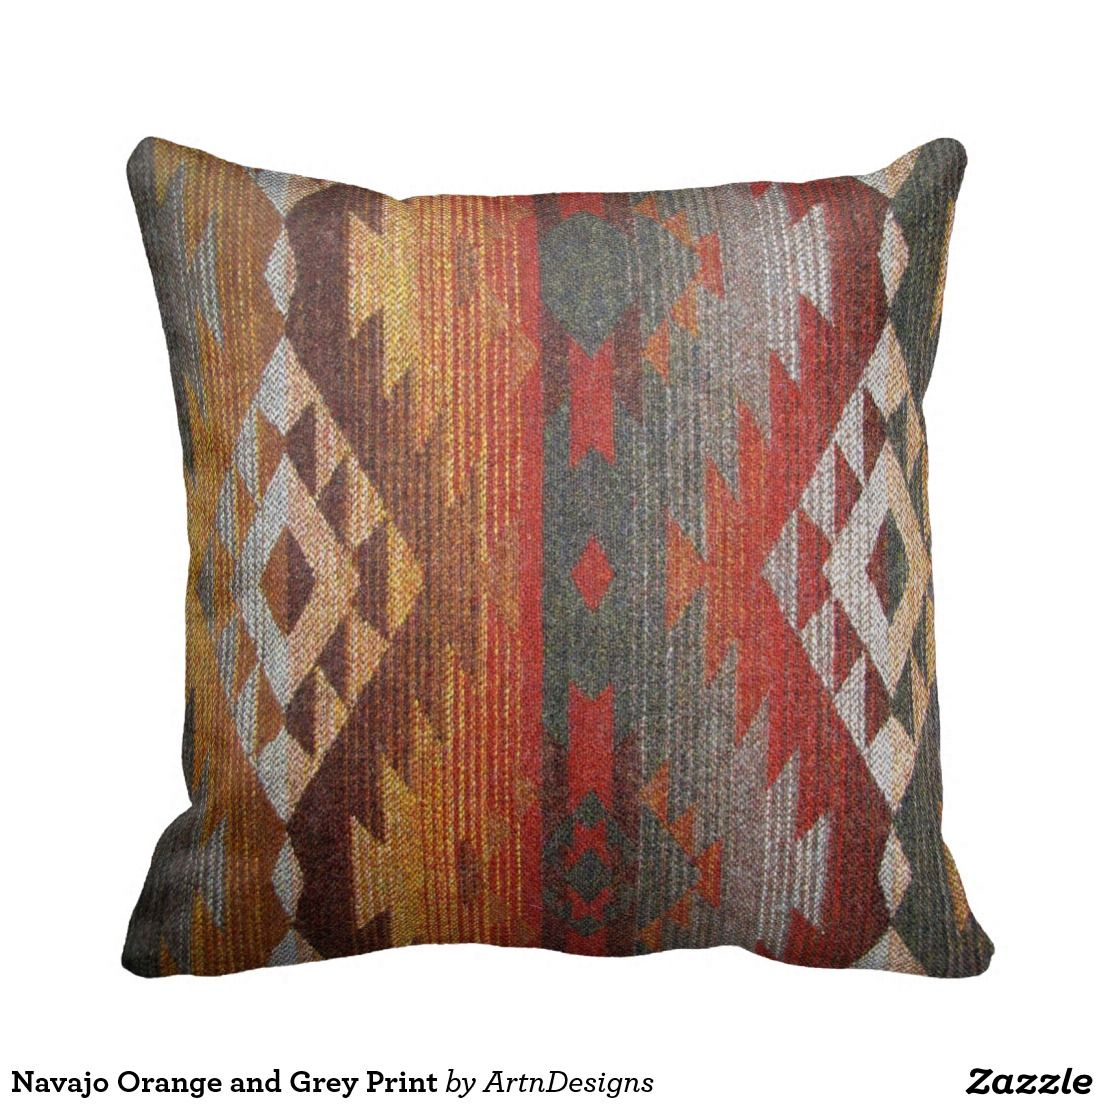 Navajo Orange and Grey Print Throw Pillow